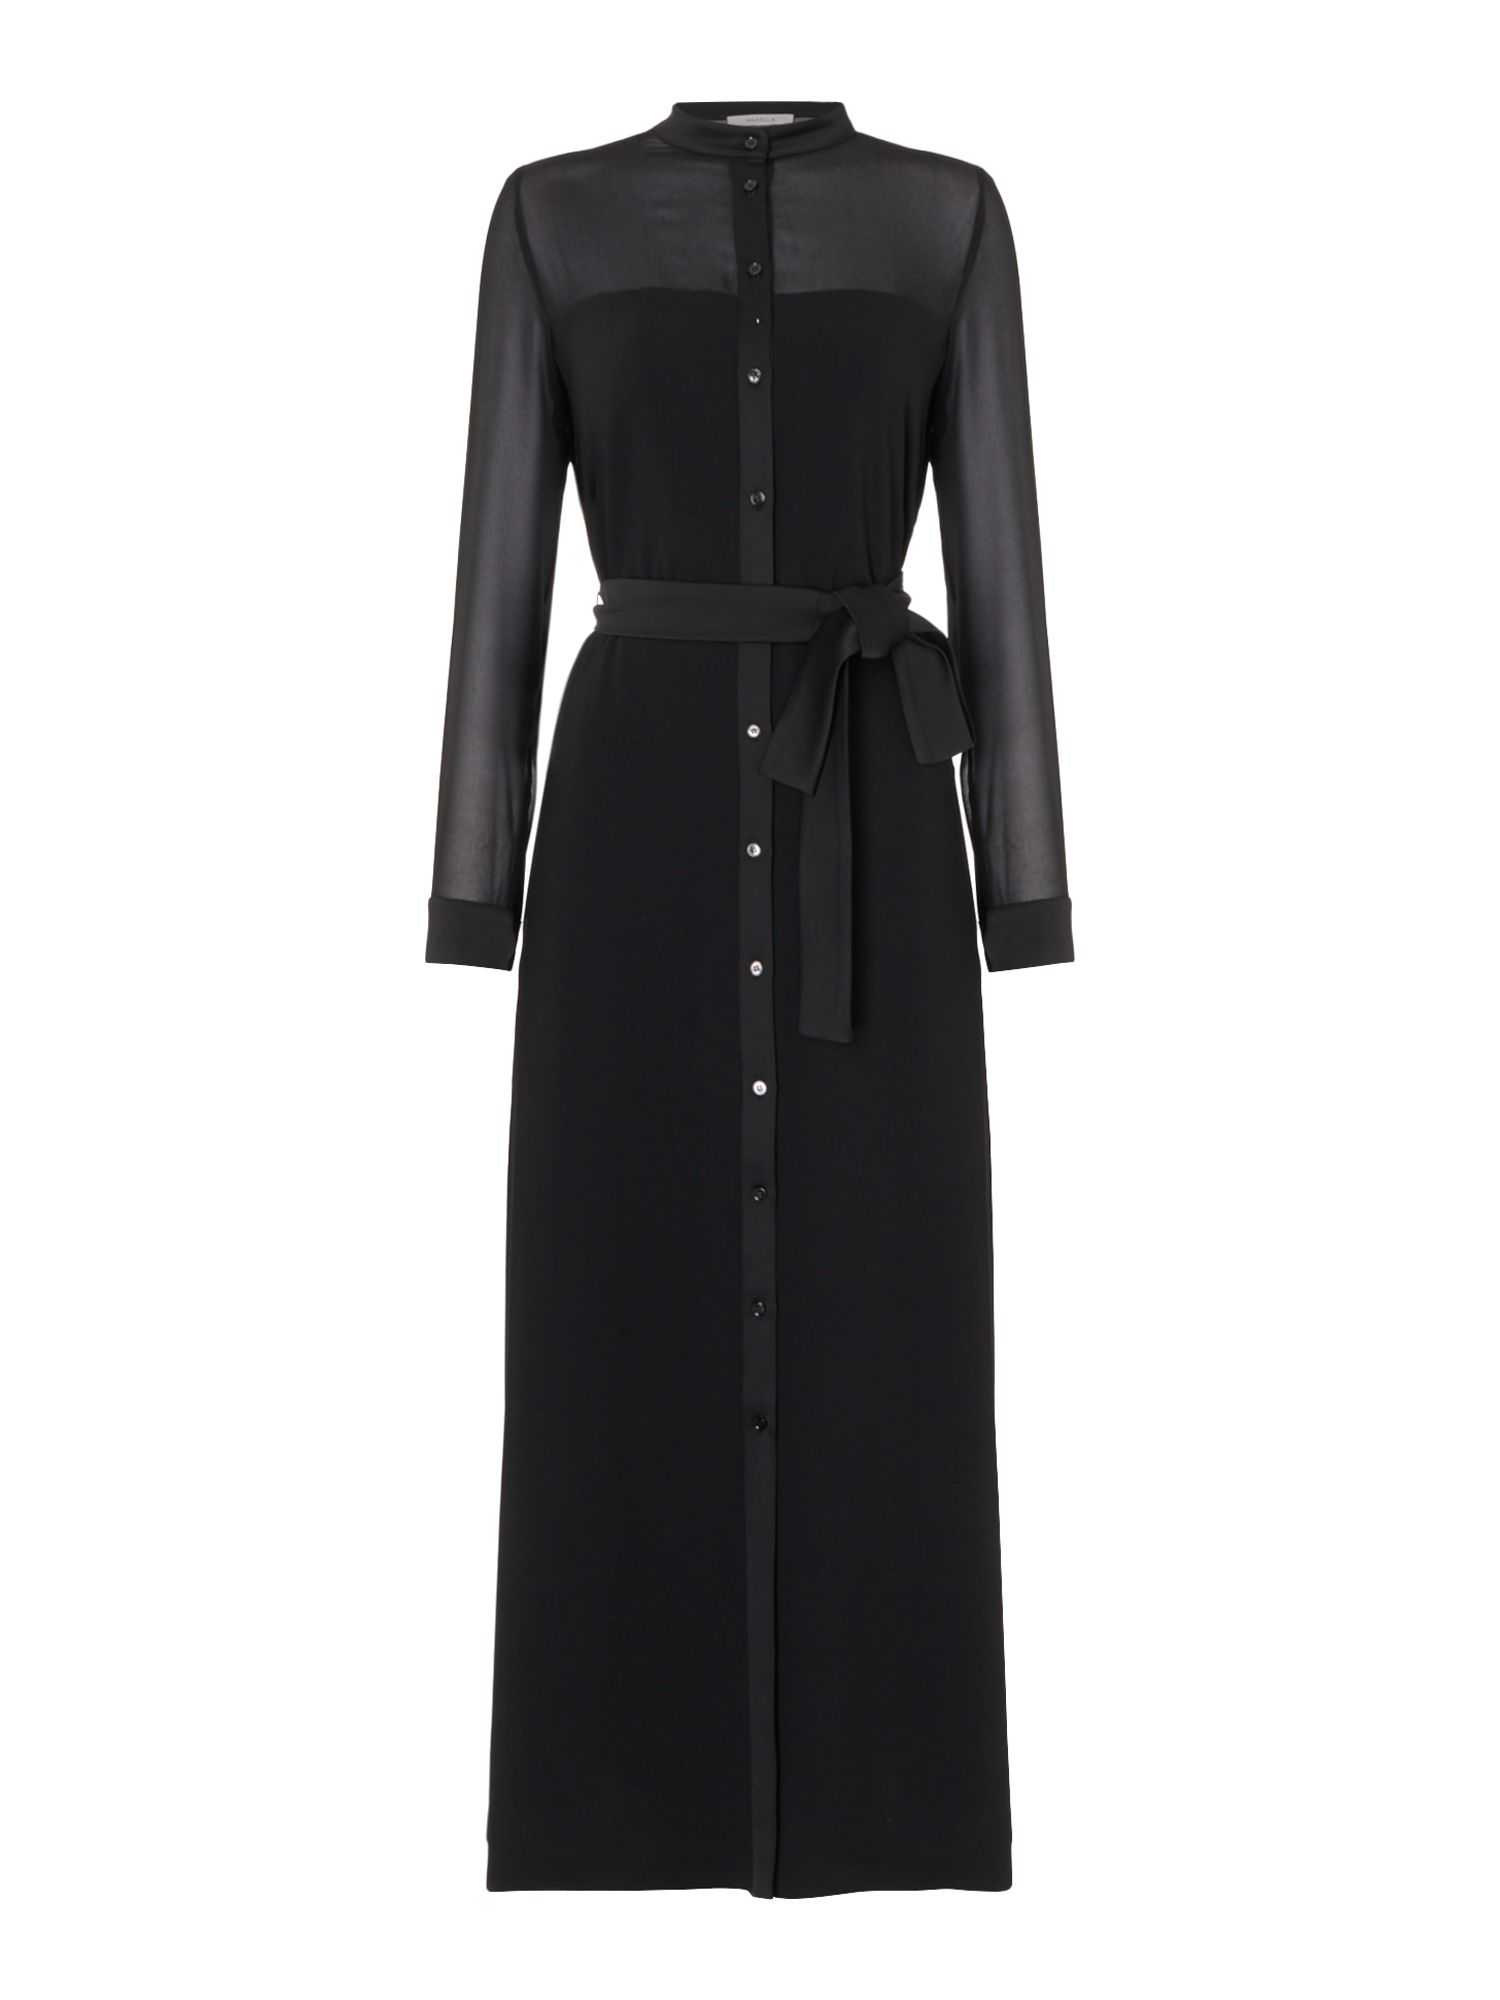 Marella Edo long black shirt dress, Black